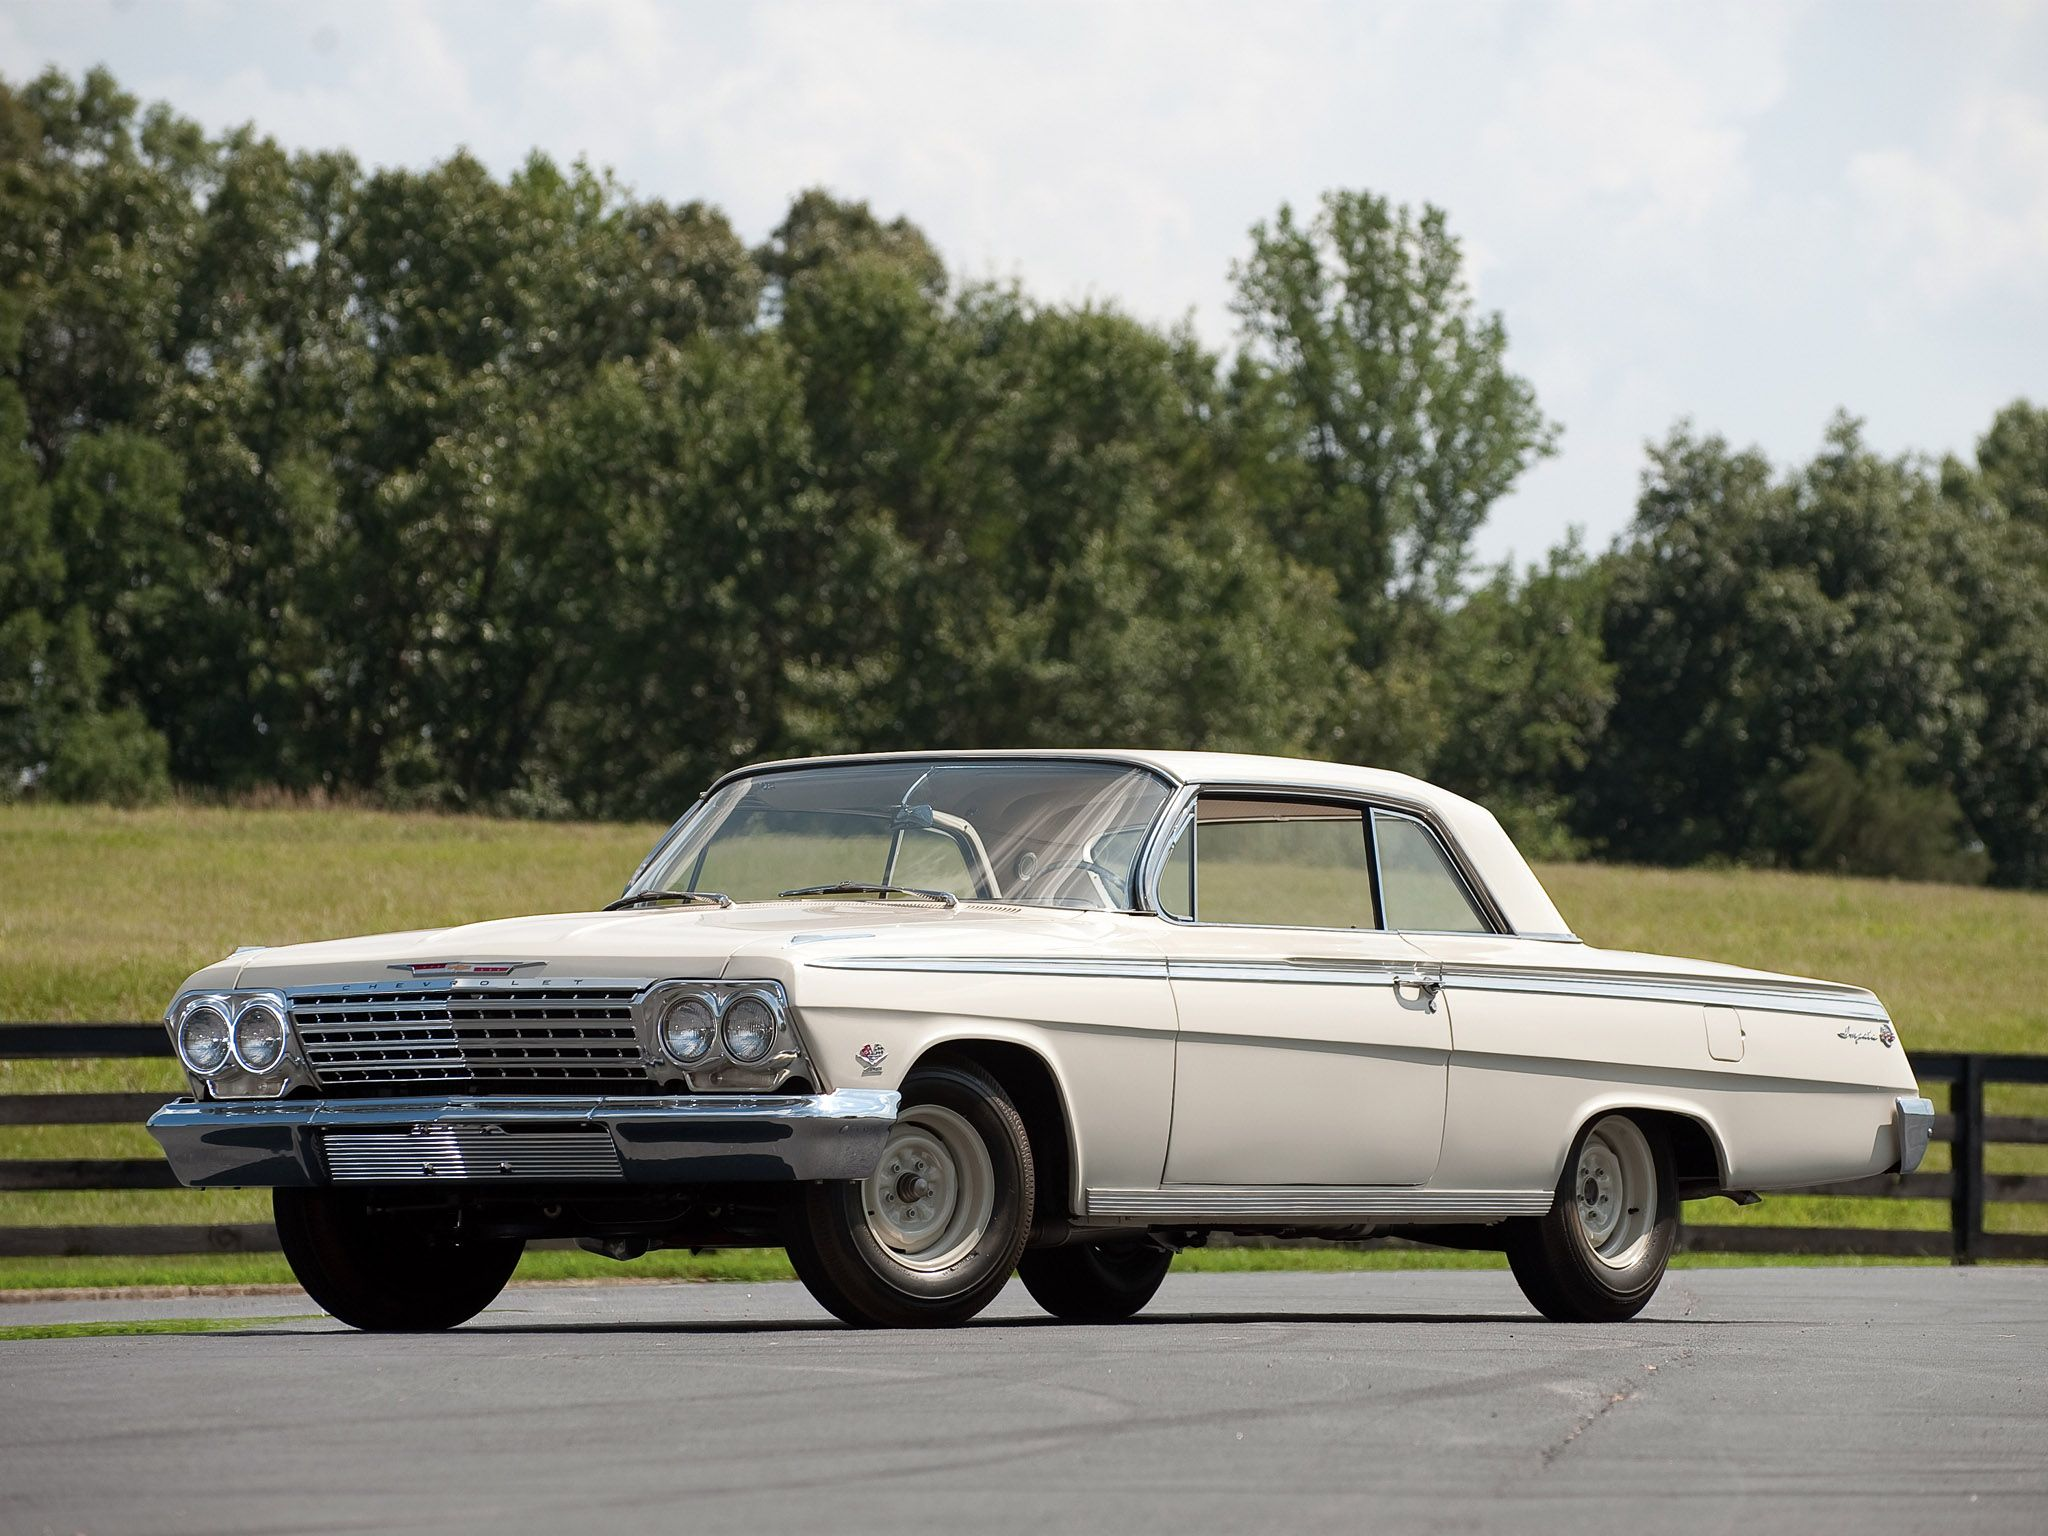 1962 Chevrolet Impala SS 409 Lightweight coupé Cars